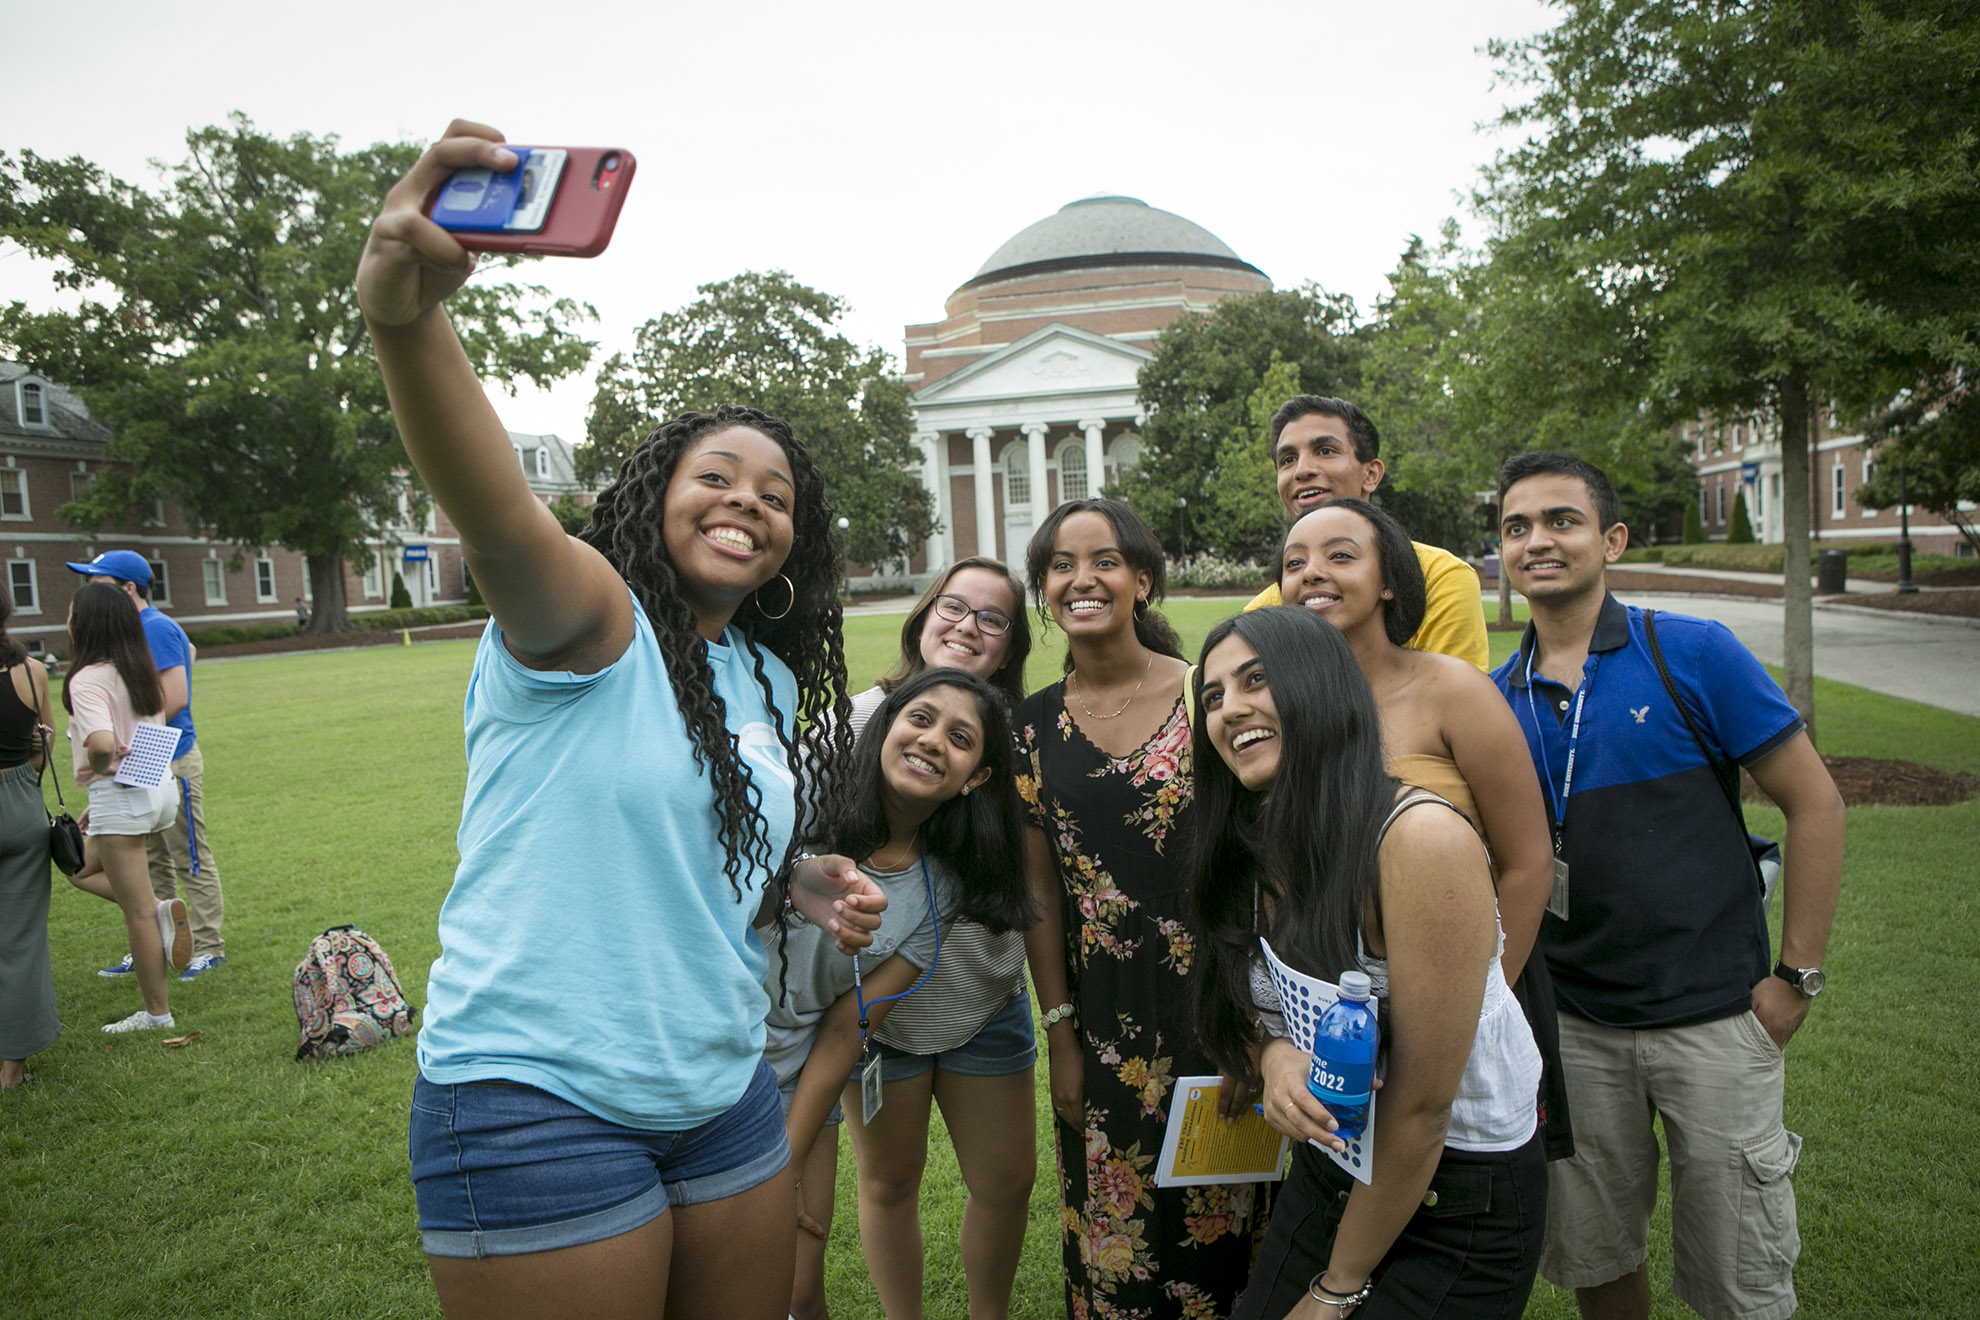 First-year students take a selfie during Orientation Week on the East Campus lawn. Photo by Jared Lazarus.